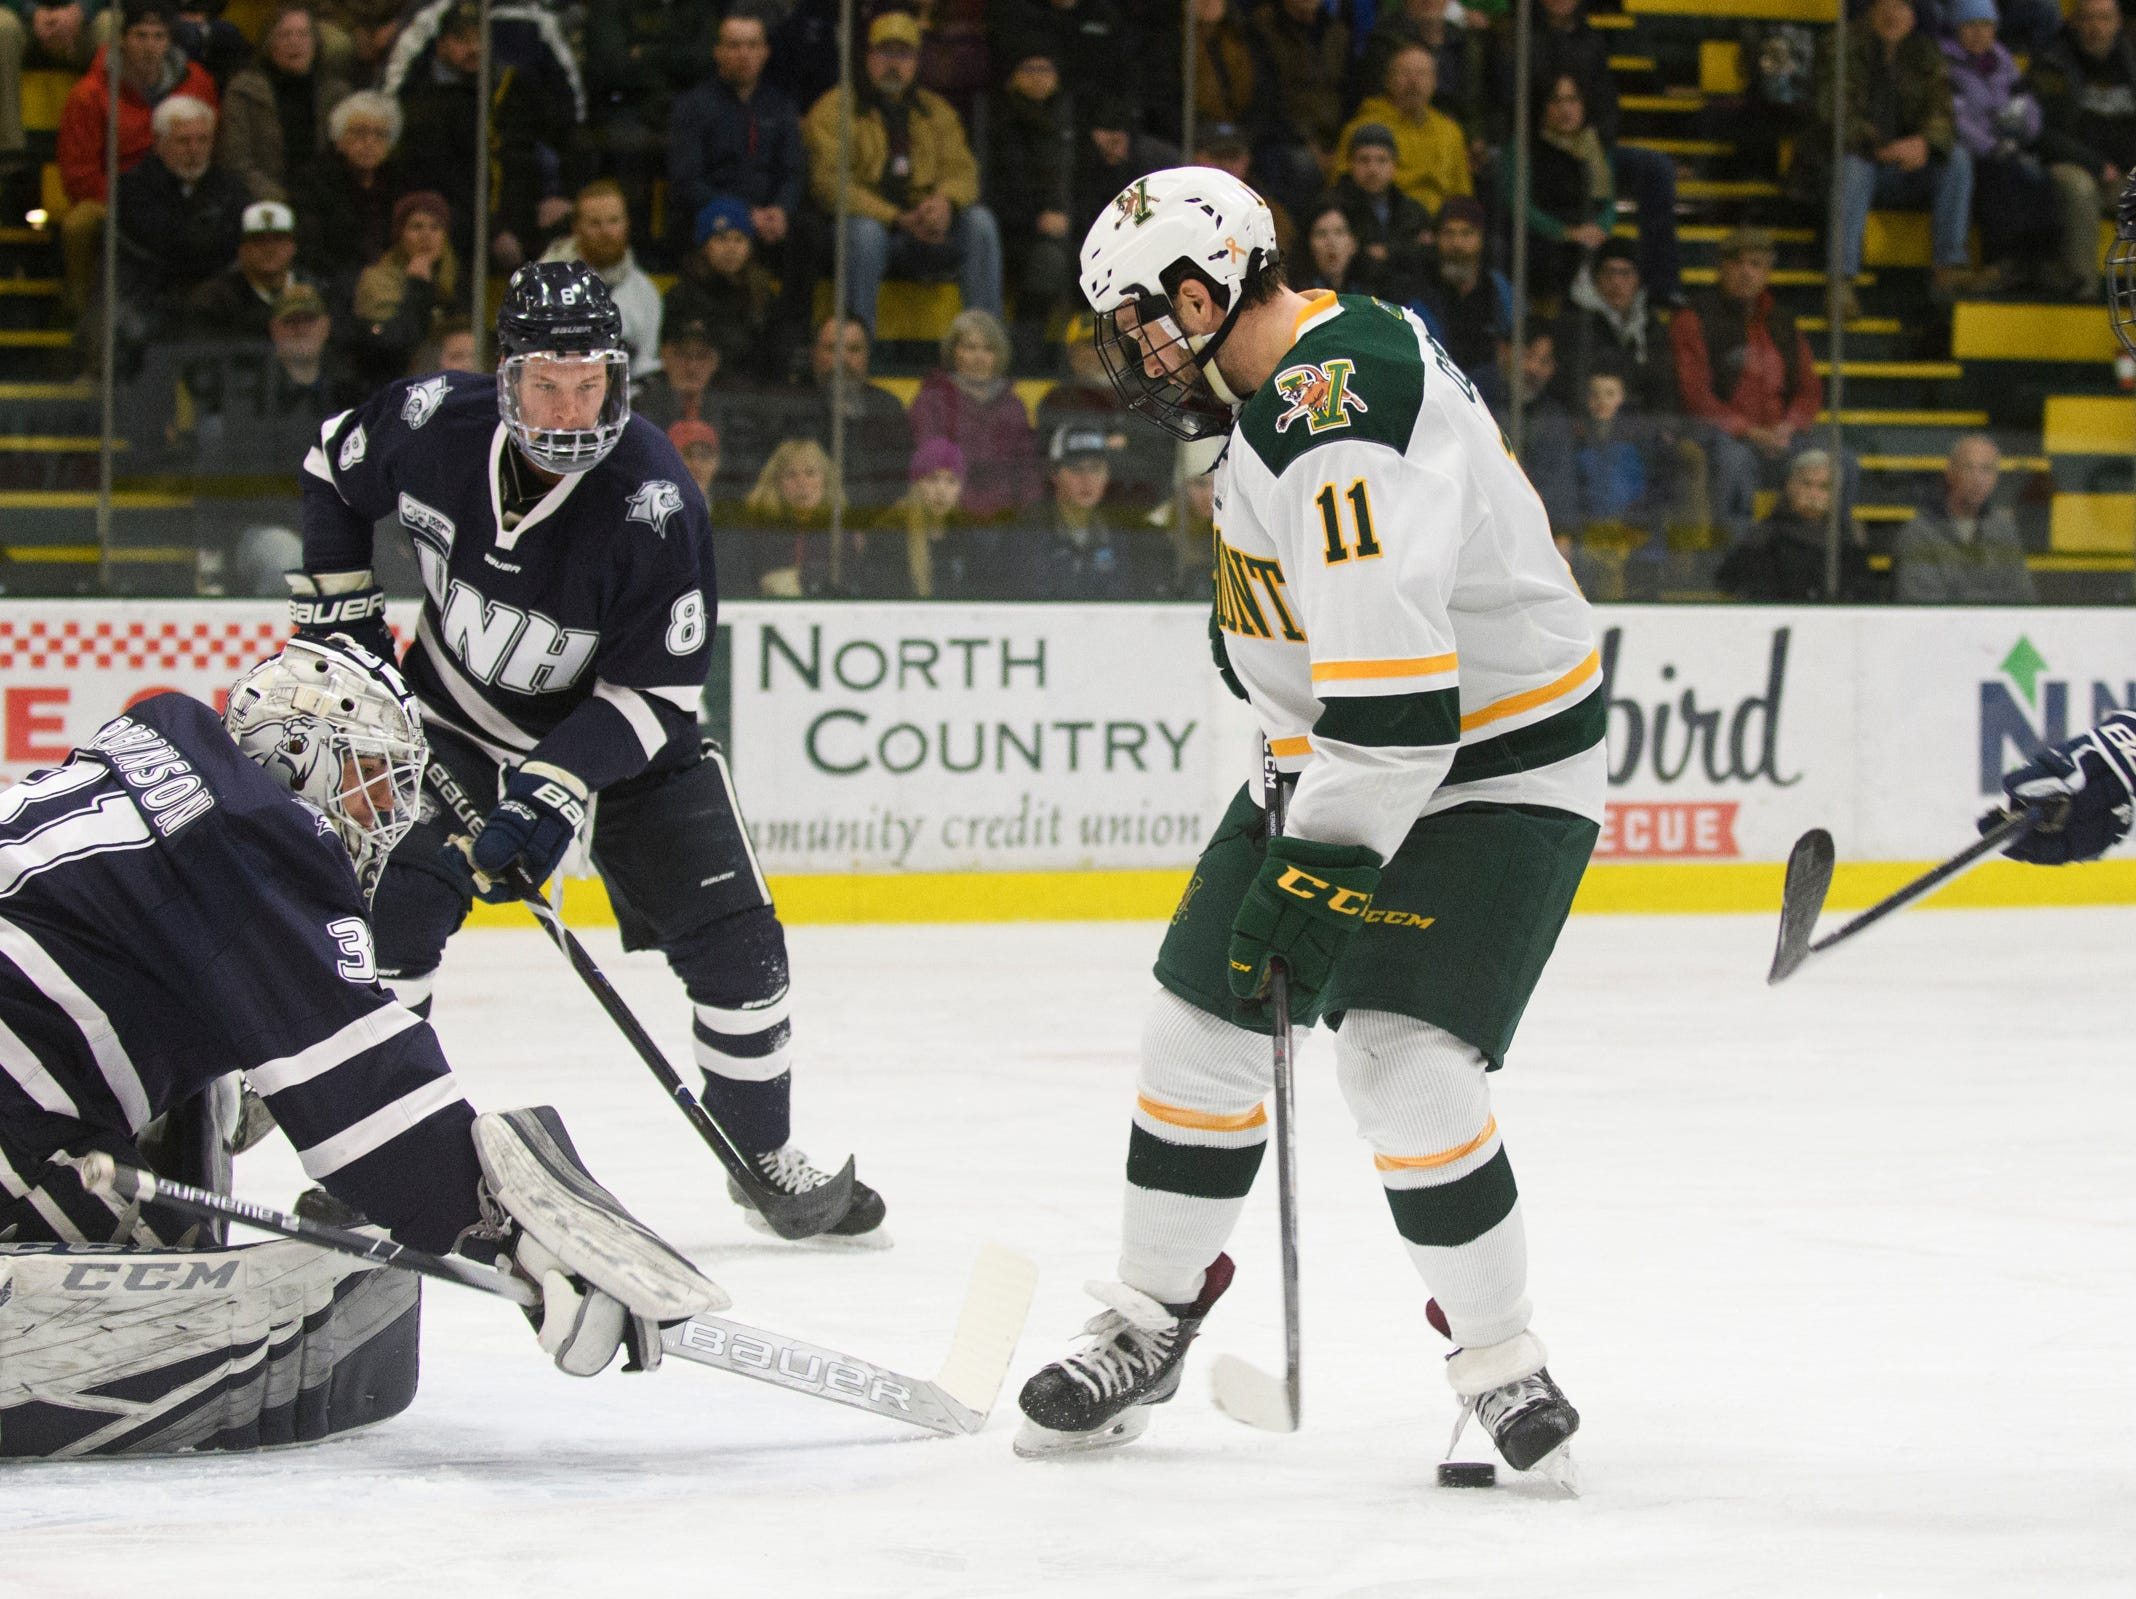 Vermont forward Conor O'Neil (11) looks for the puck  in front of the net during the men's hockey game between the New Hampshire Wildcats and the Vermont Catamounts at Gutterson Field House on Friday night February 8, 2019 in Burlington, Vermont.